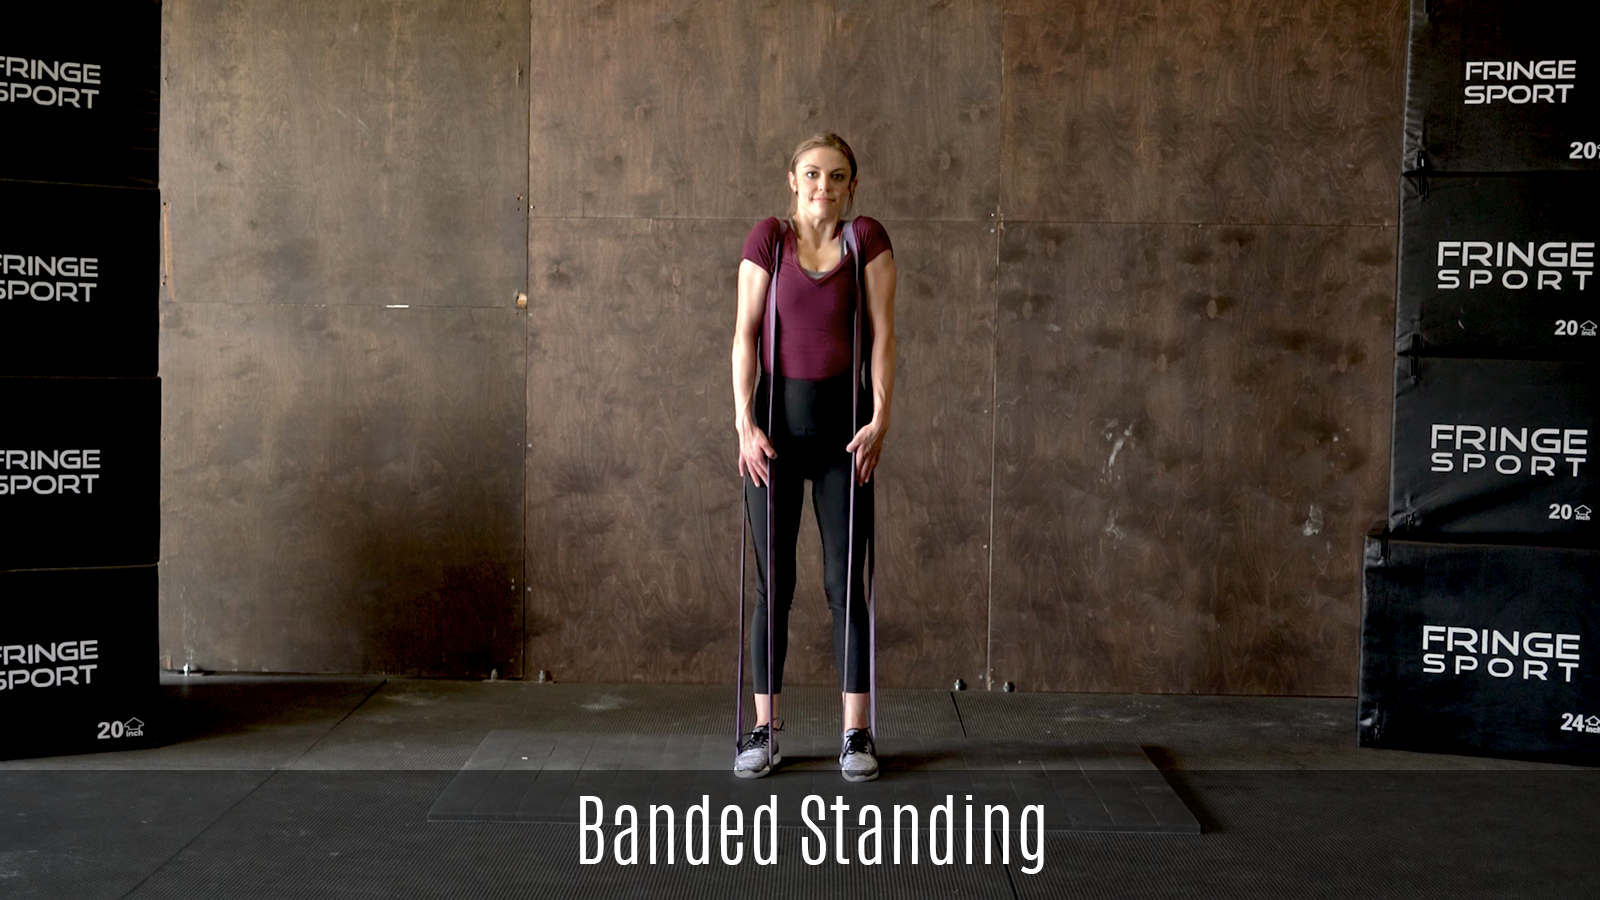 standing trap stretch demo using exercise bands